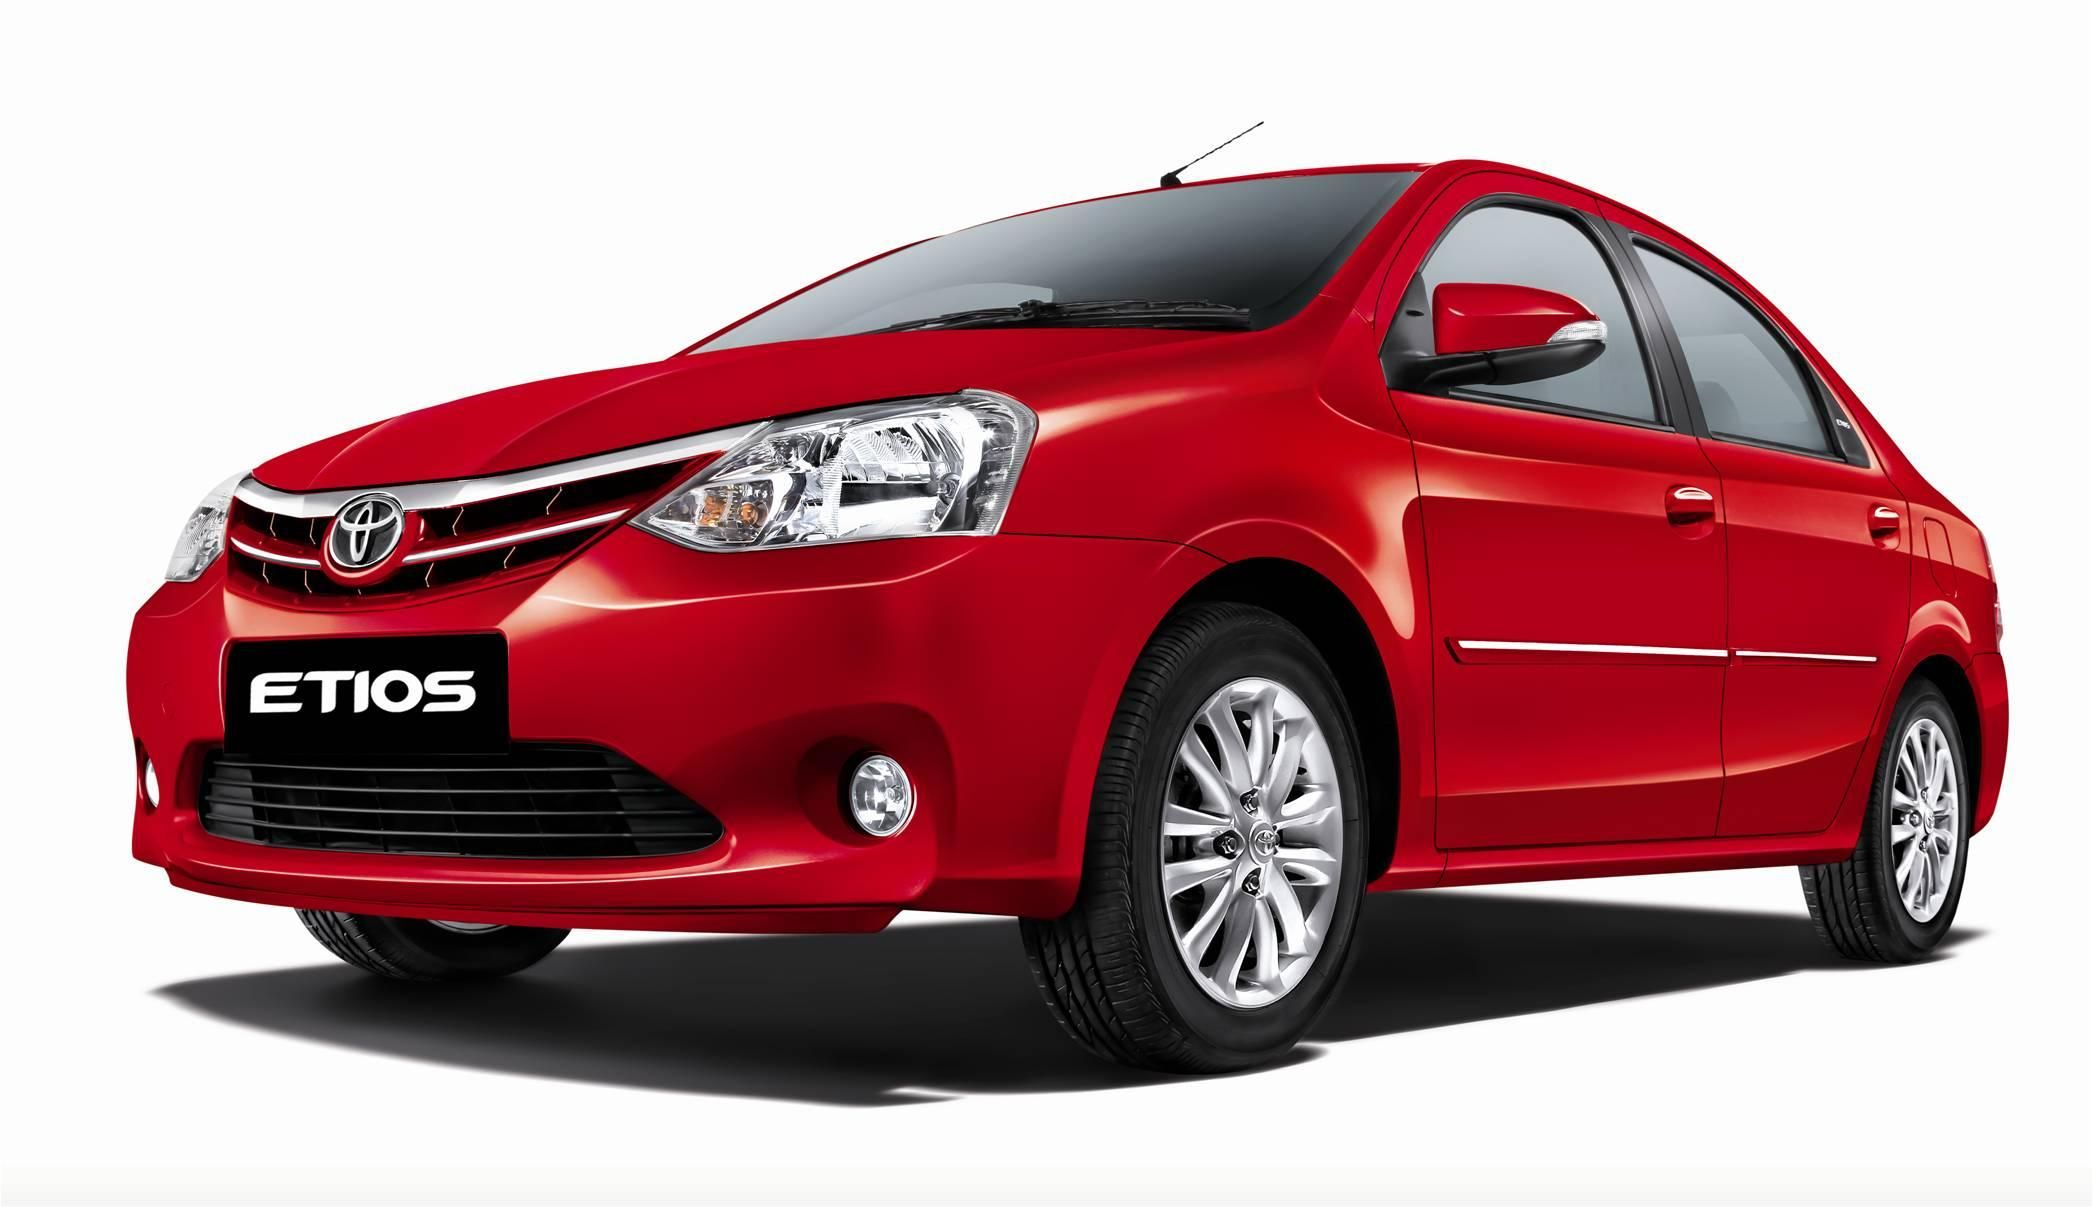 Limited Period Offer On Toyota Etios Hundredcoupons Com Hundred Coupons In 2020 Most Fuel Efficient Cars Fuel Efficient Cars Toyota Cars